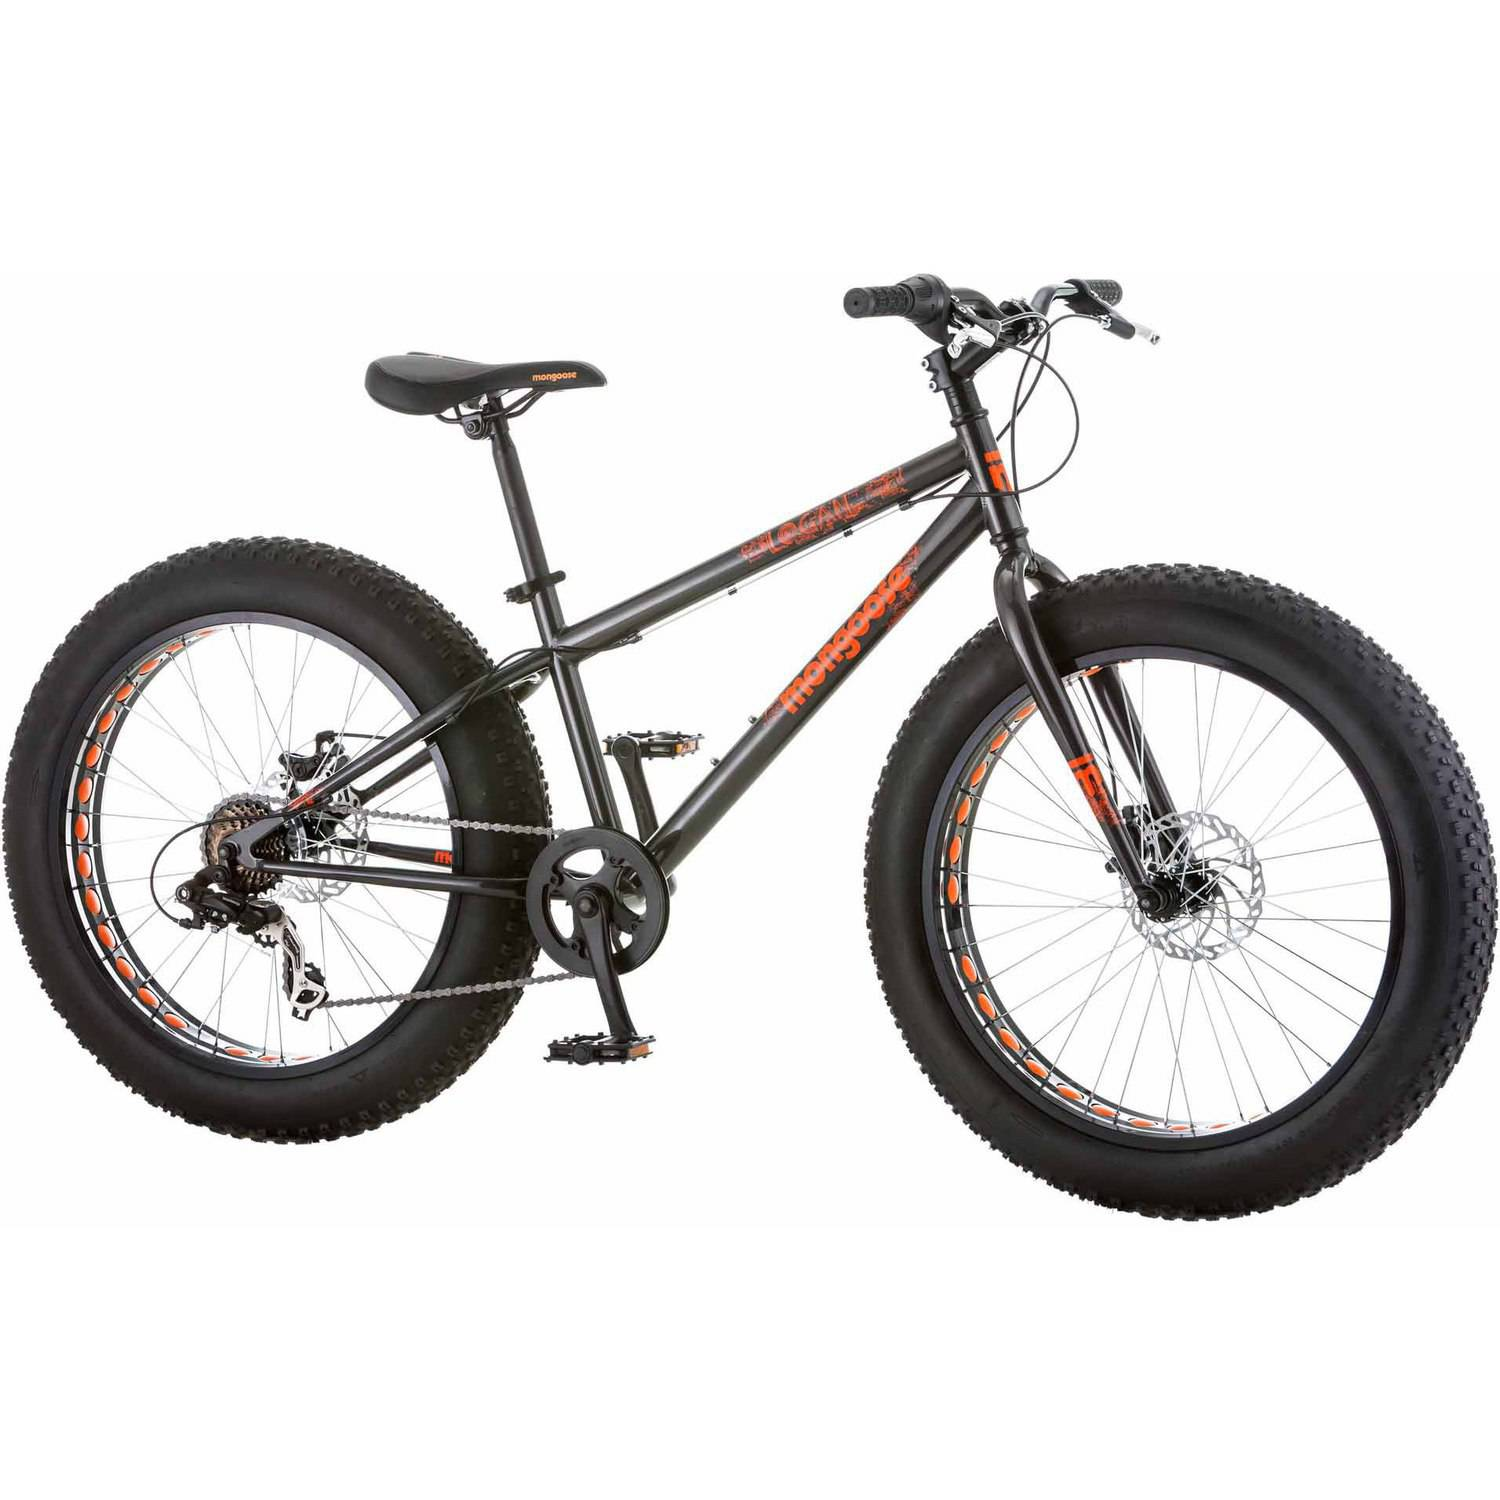 Boys Outdoor Bike 24 Inch Push Pedal Ride Bicycle Kids